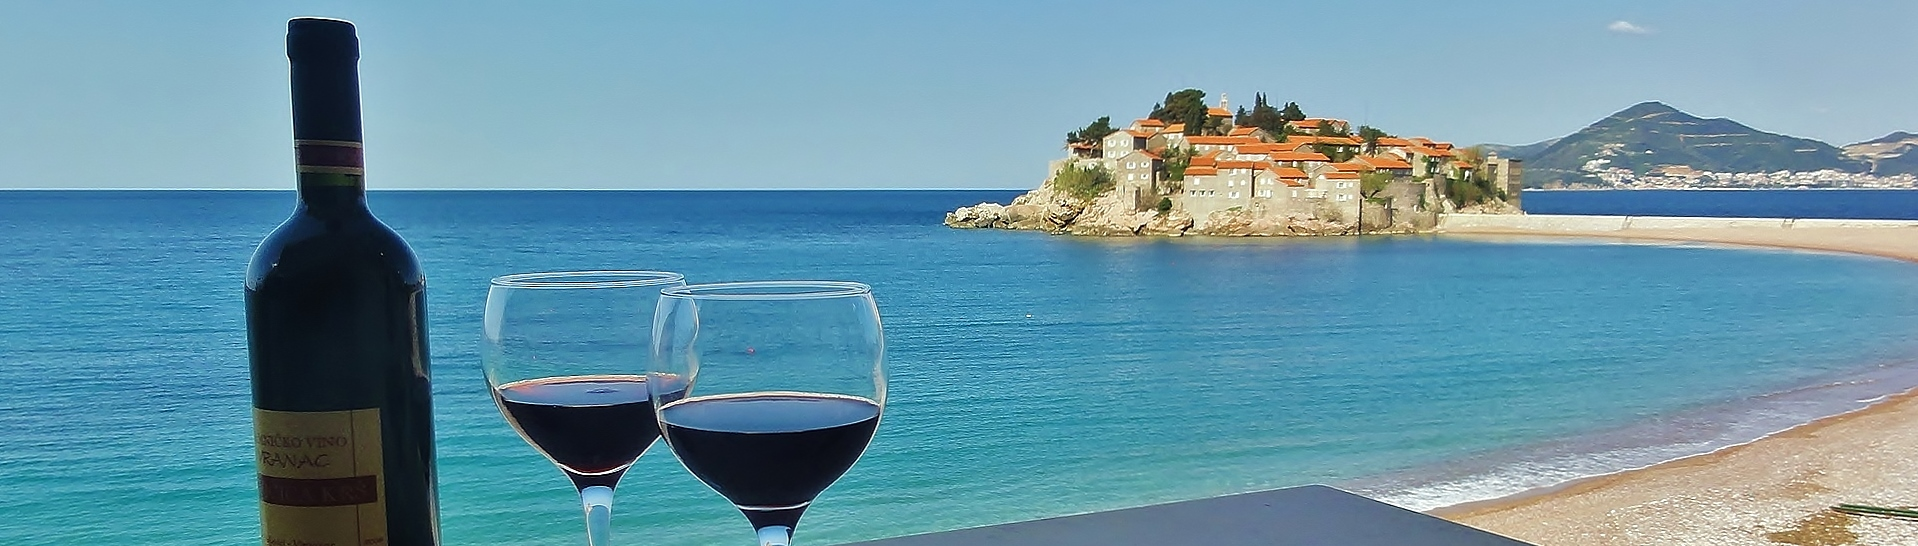 Sveti Stefan wine and beach view - Montenegro_2_1920x552